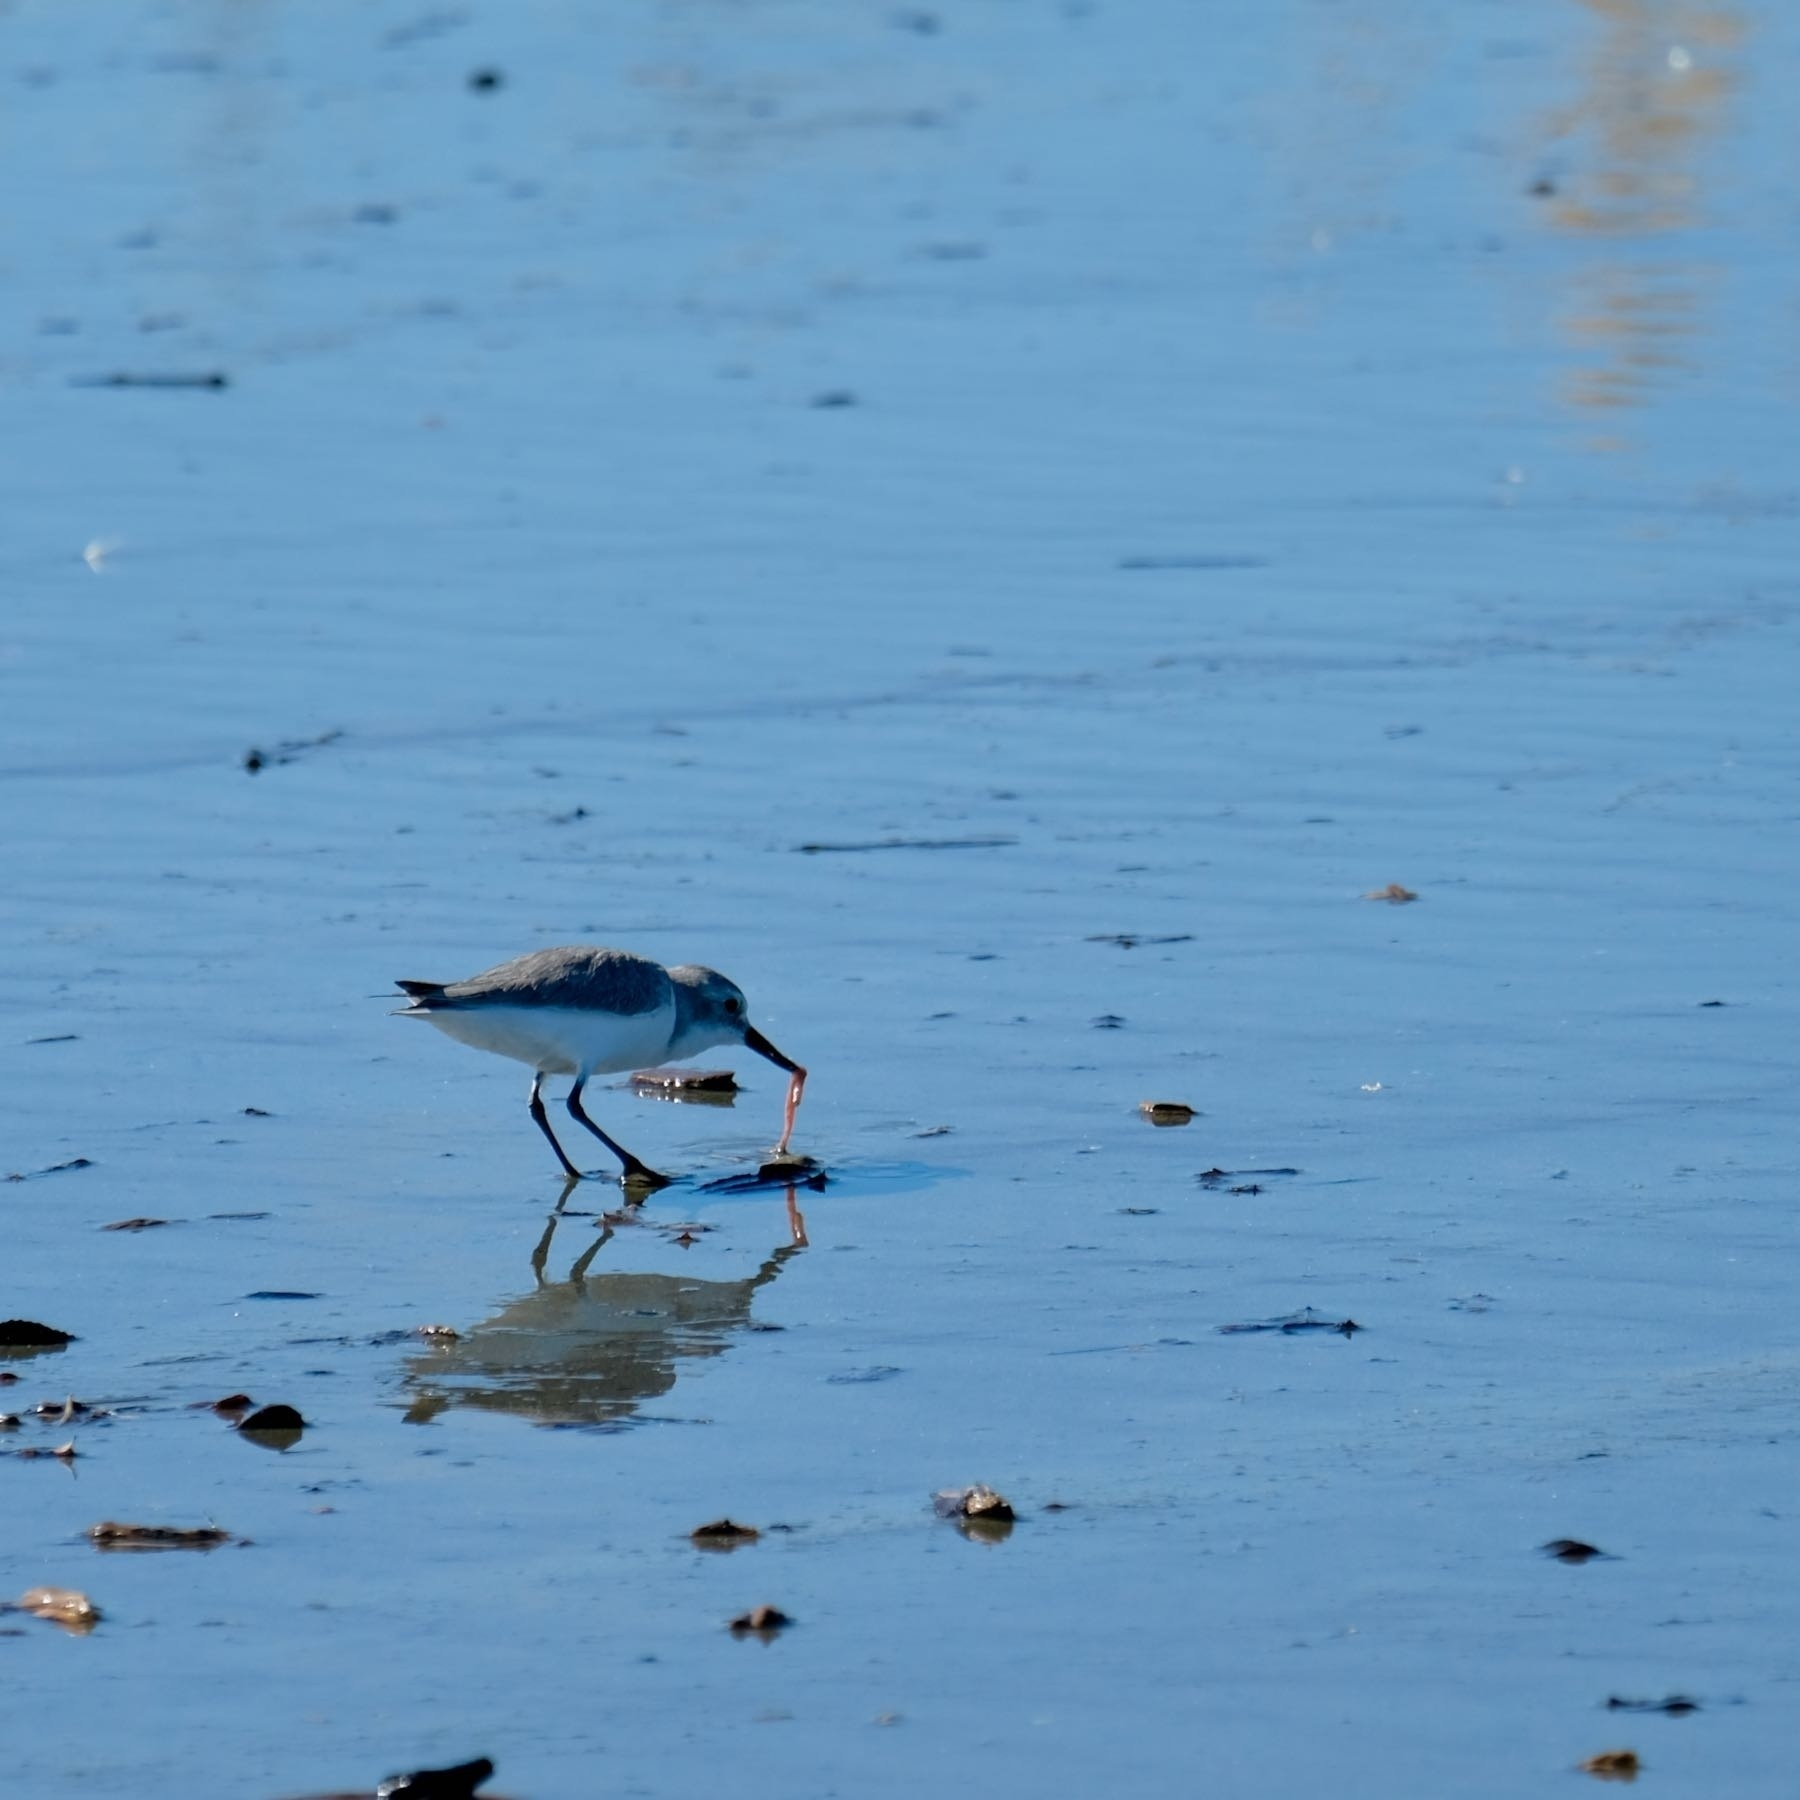 Small bird plucking a meal from wet sand.